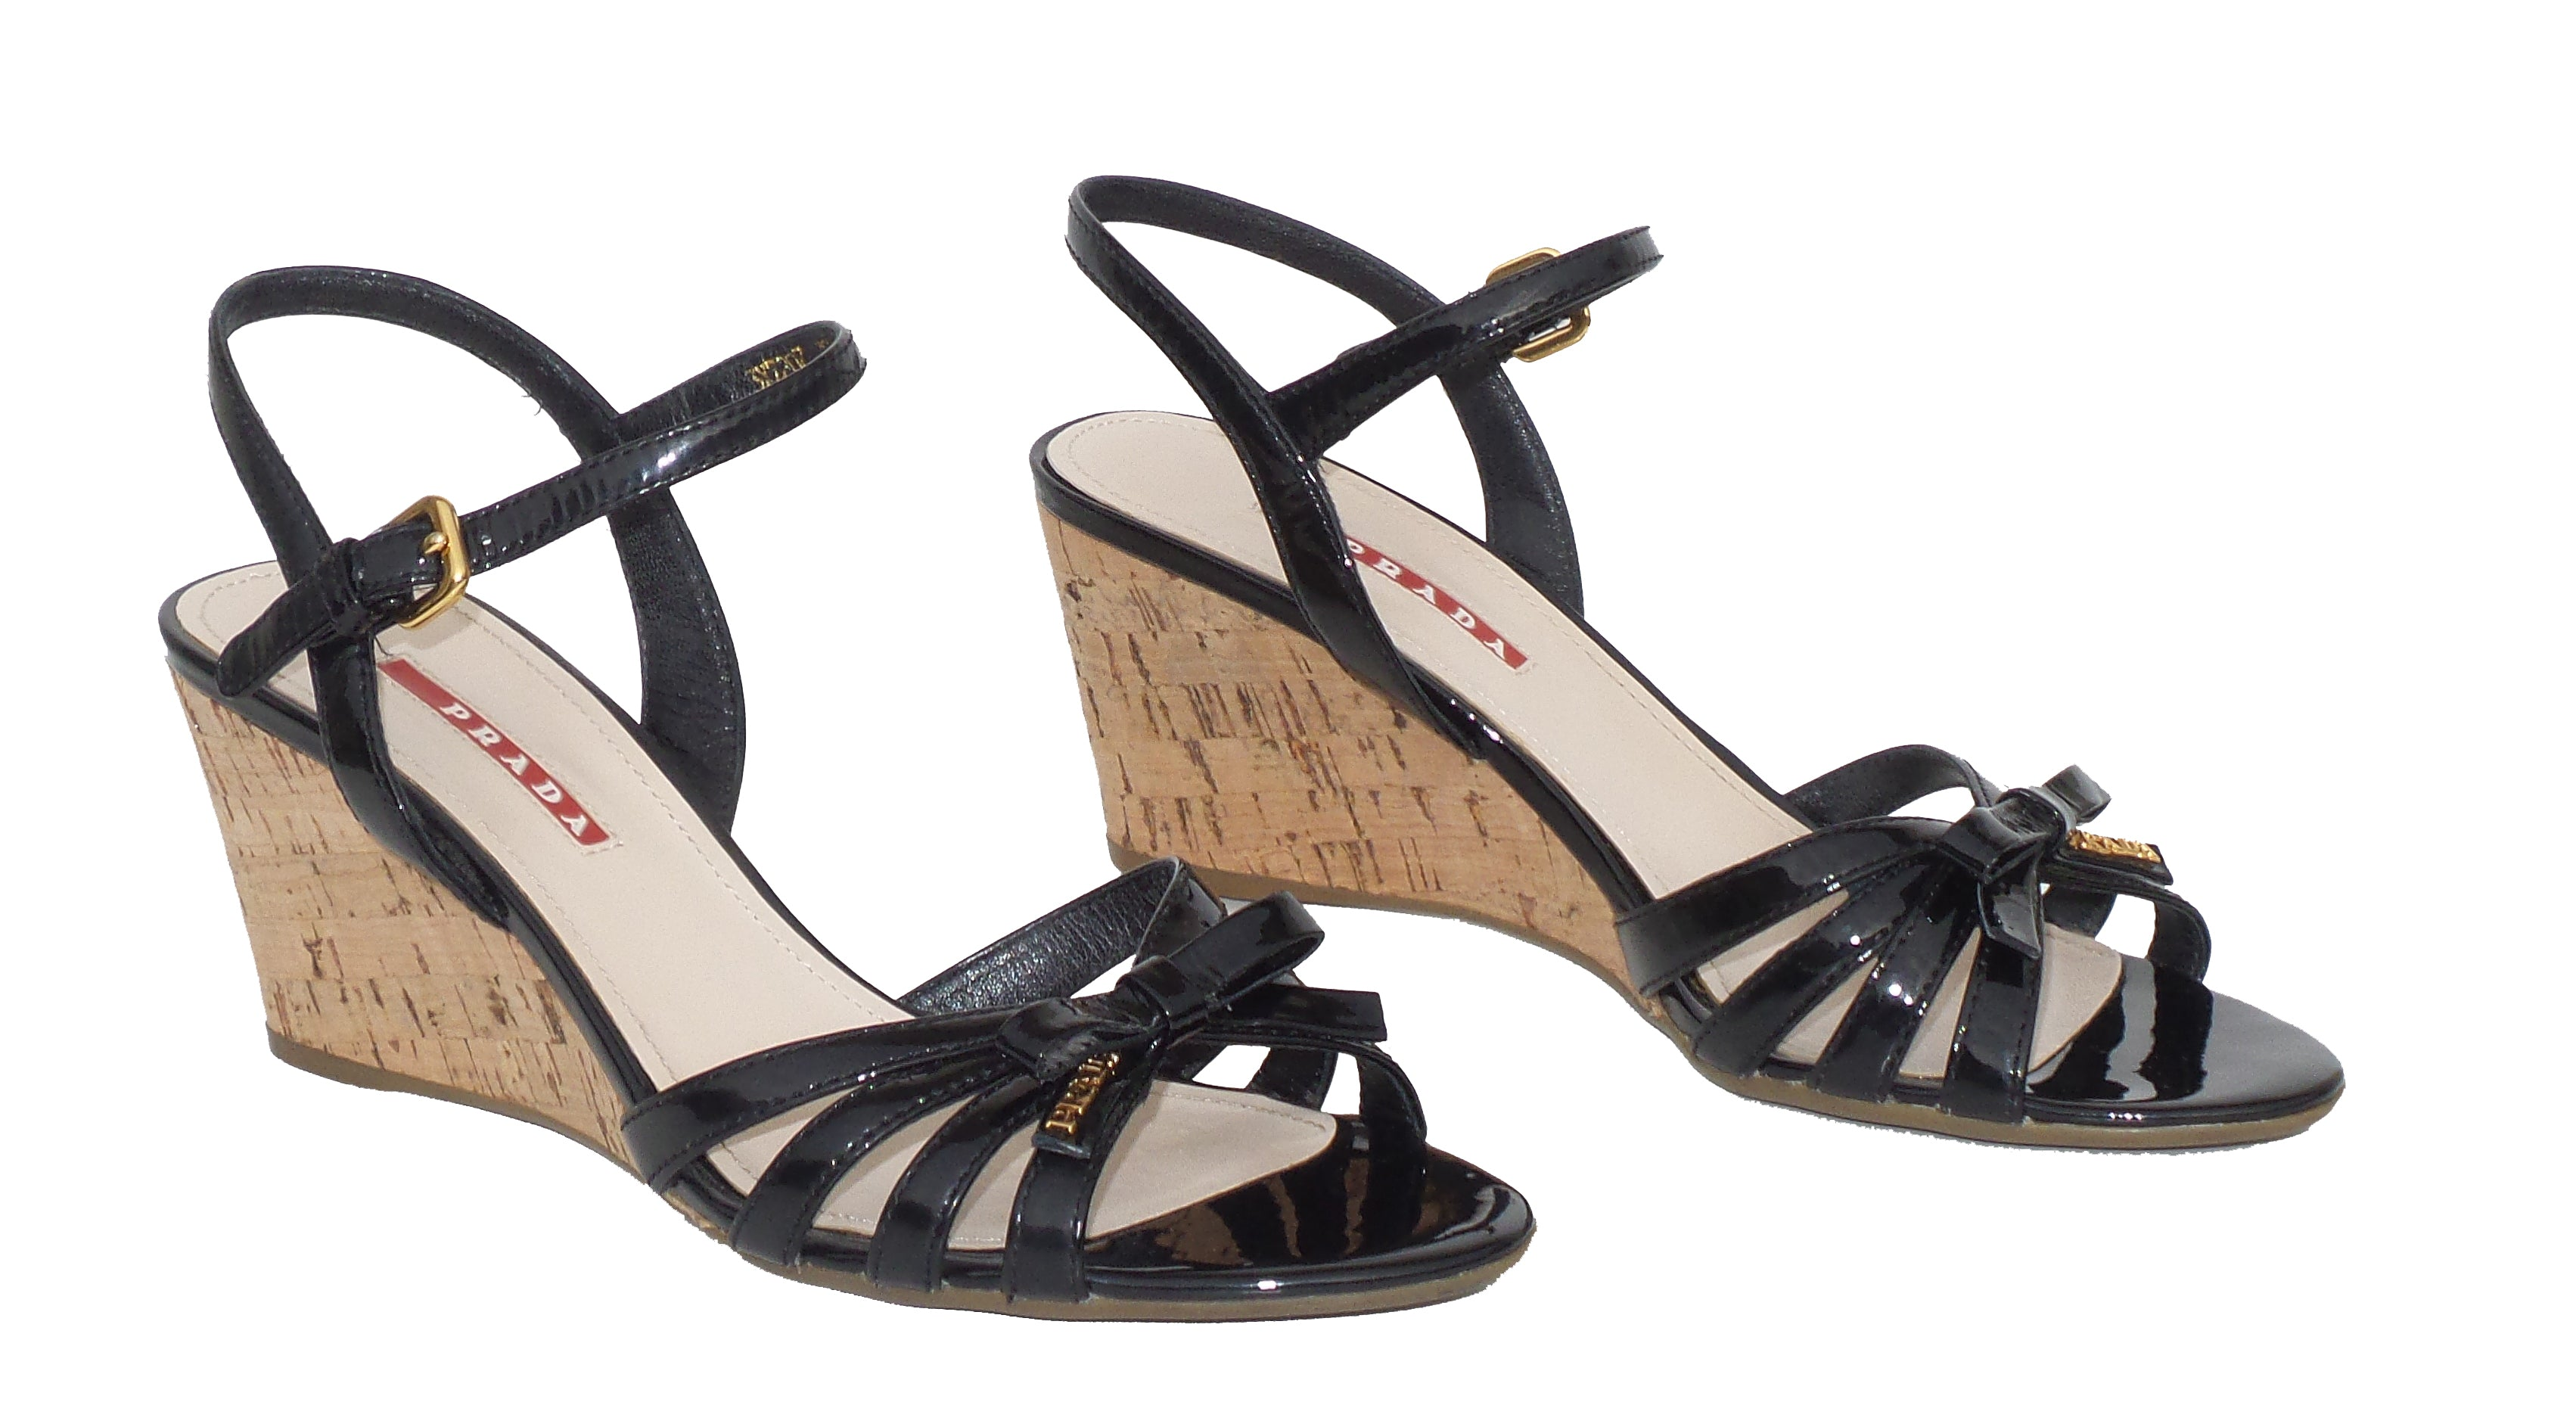 c7b7e650 Sold' PRADA Sport Black Patent Leather Strappy Bow Cork Wedge Heel ...